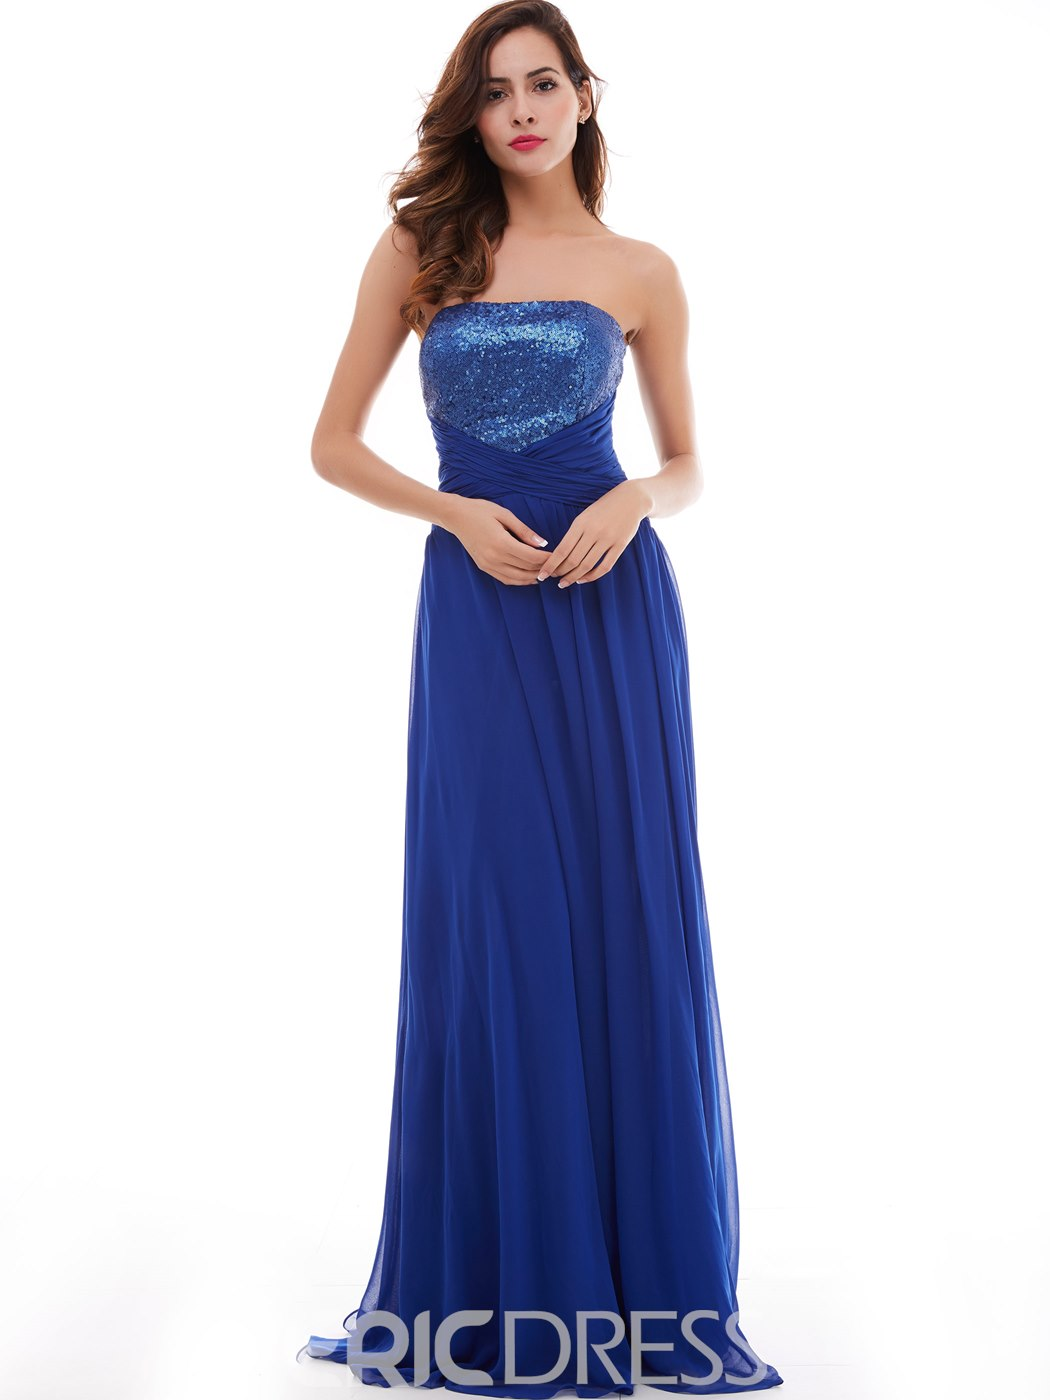 Ericdress A-Line Strapless Draped Pleats Sequins Long Prom Dress